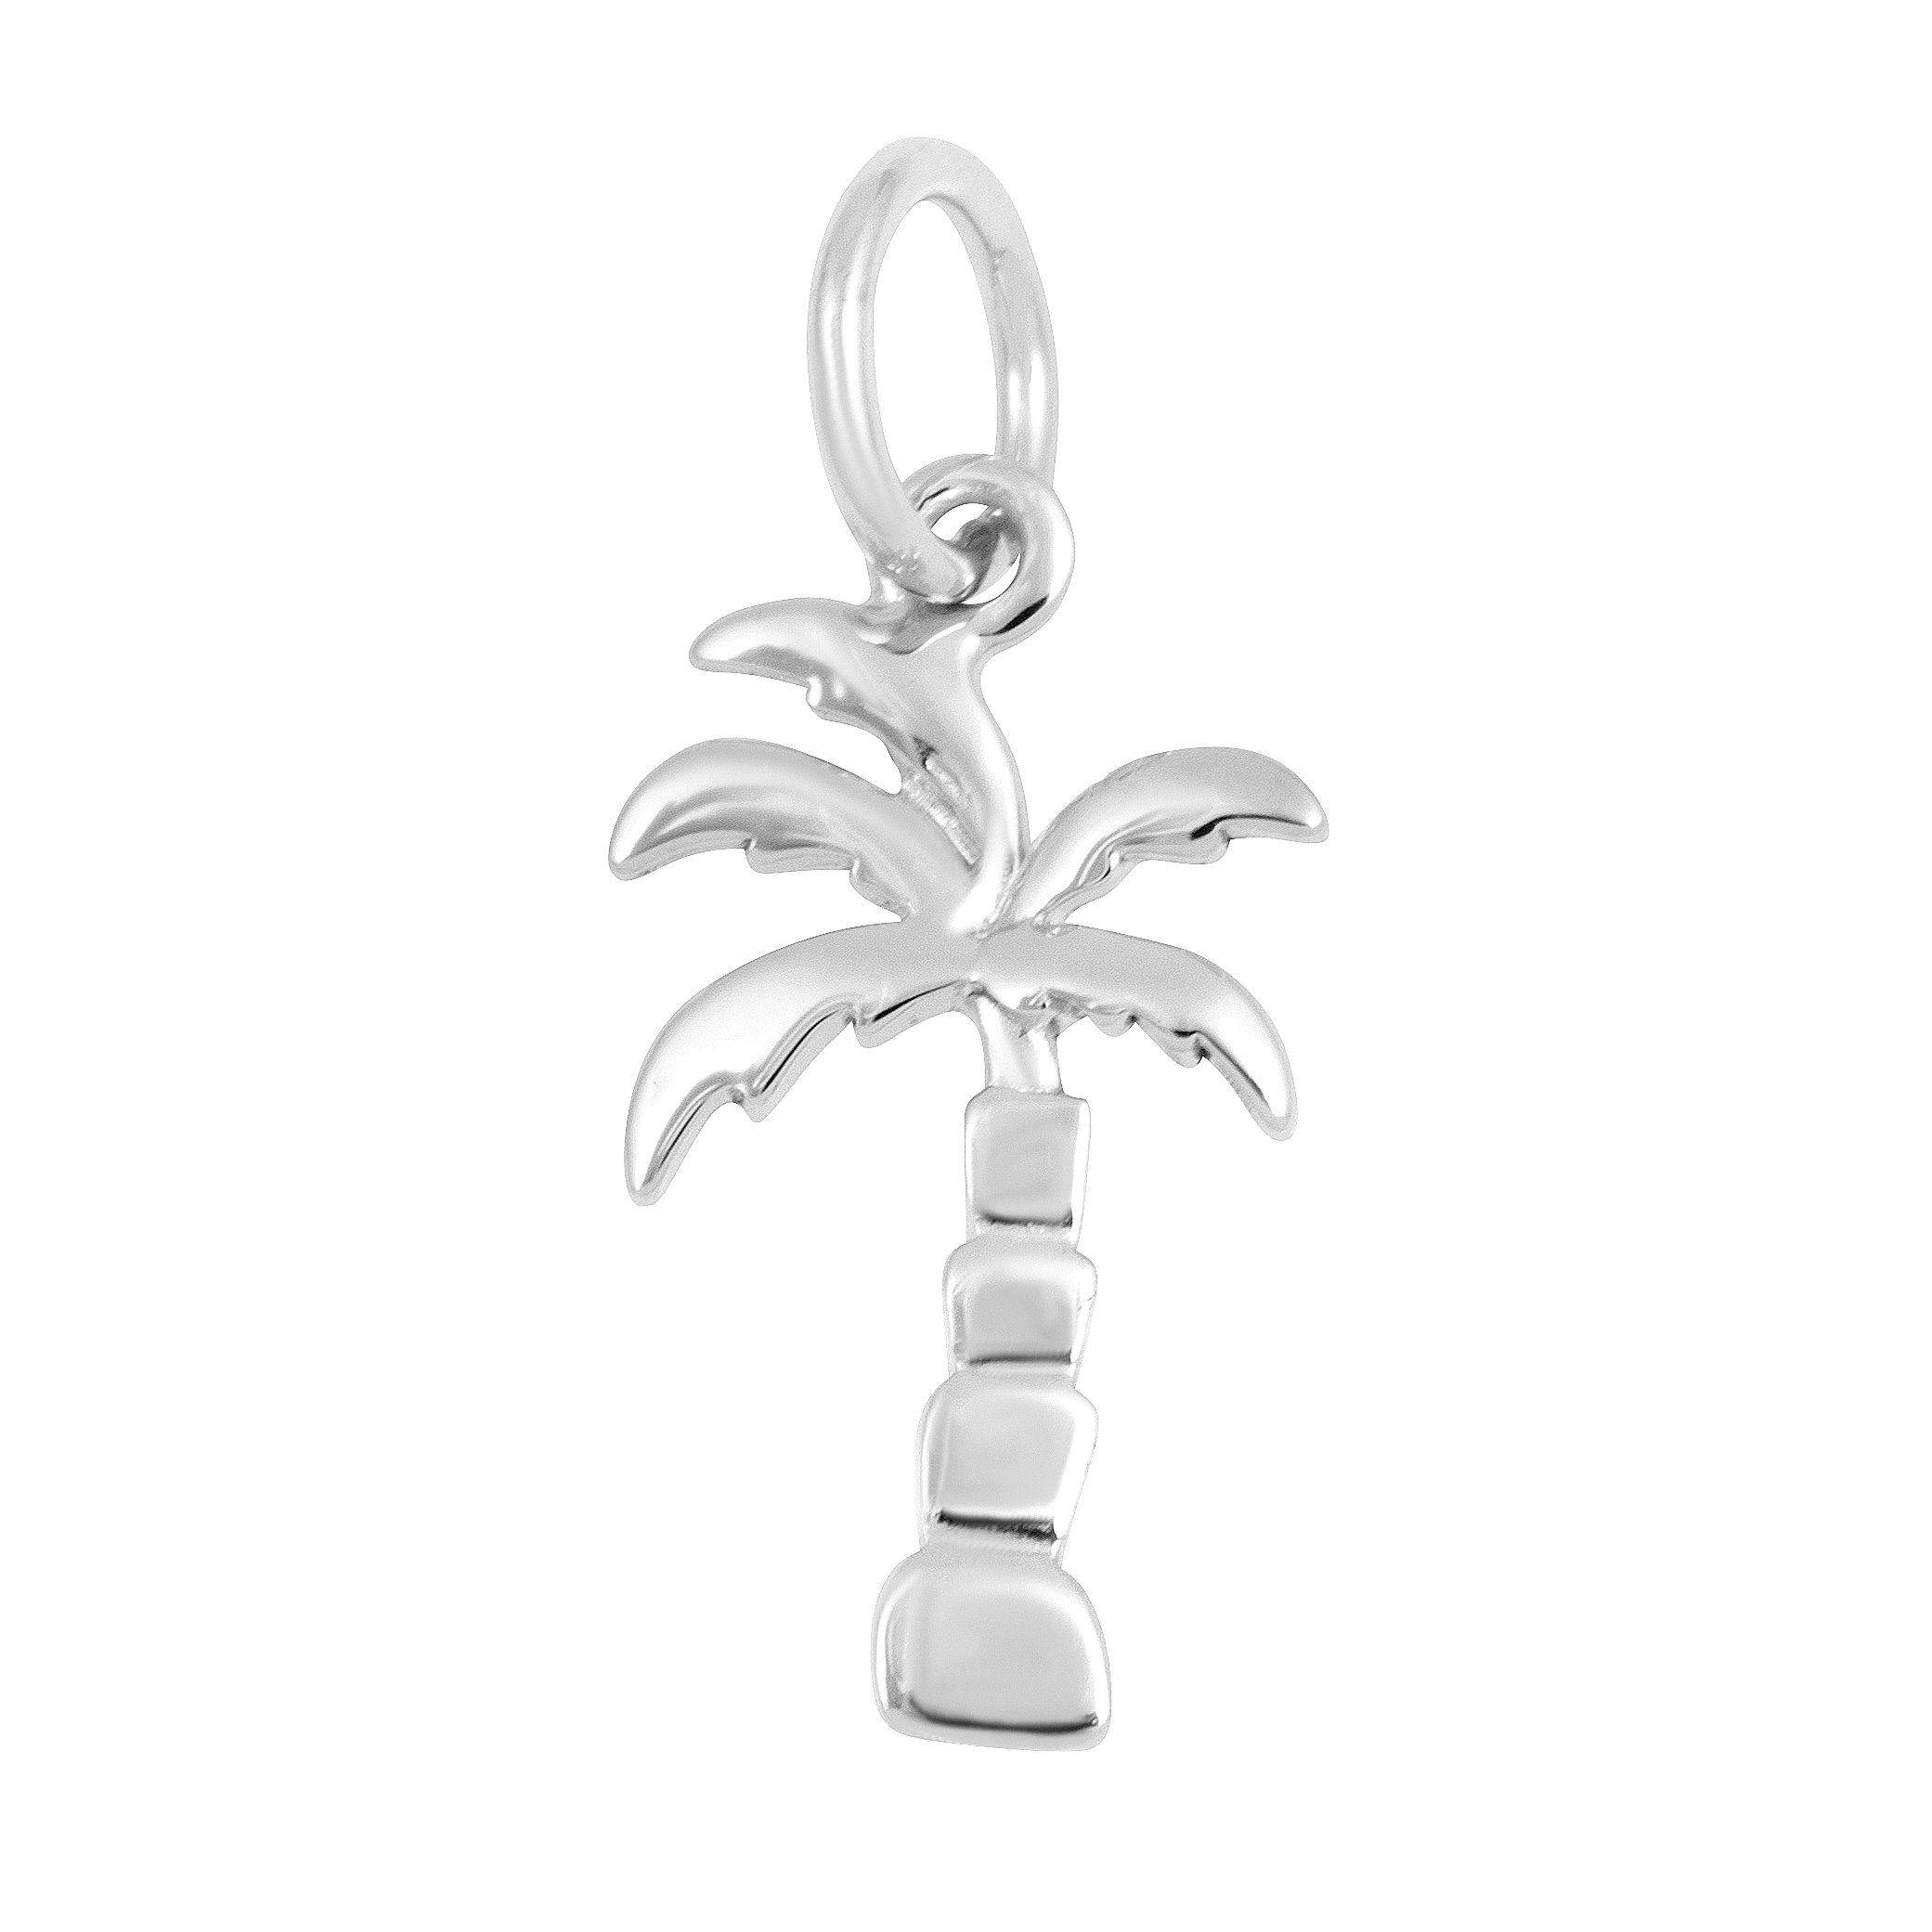 Necklace & Bracelet Charms, Nautical & Beach Theme Sterling Silver Jewelry by Silver on the Rocks